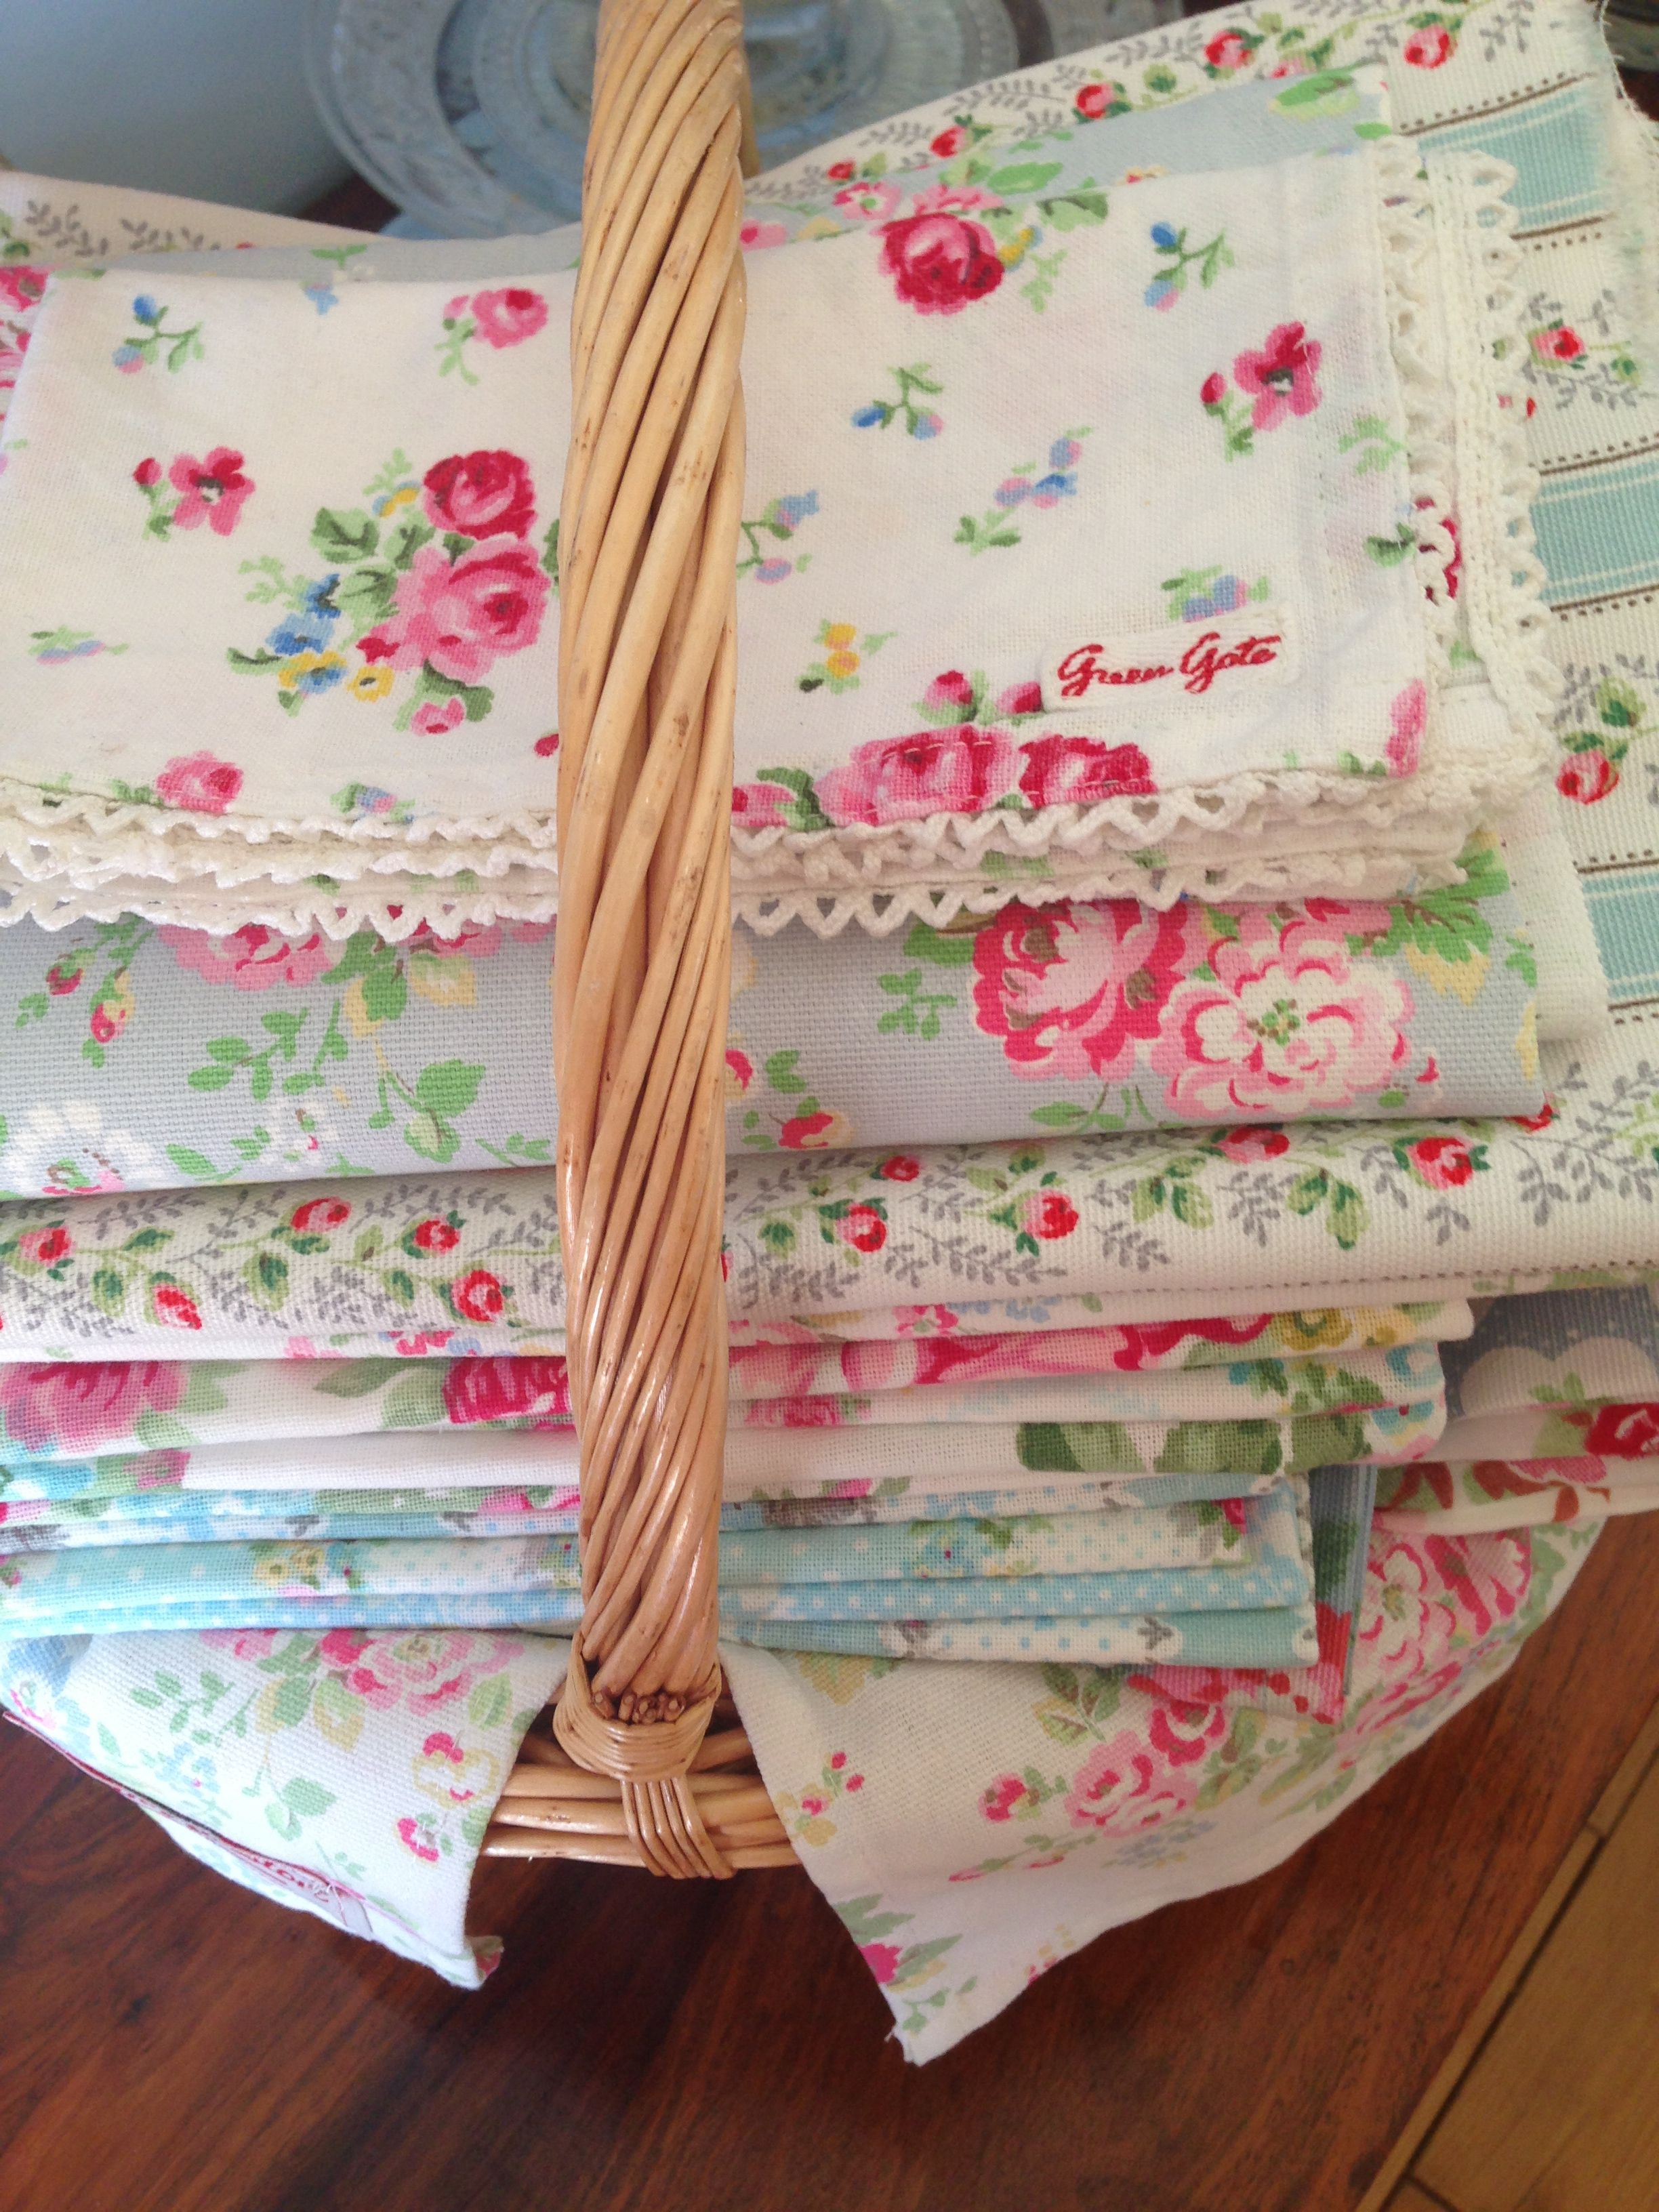 Pin By Diane Nasiff On Florals Cath Kidston Fabric Vintage Linens Vintage Crafts